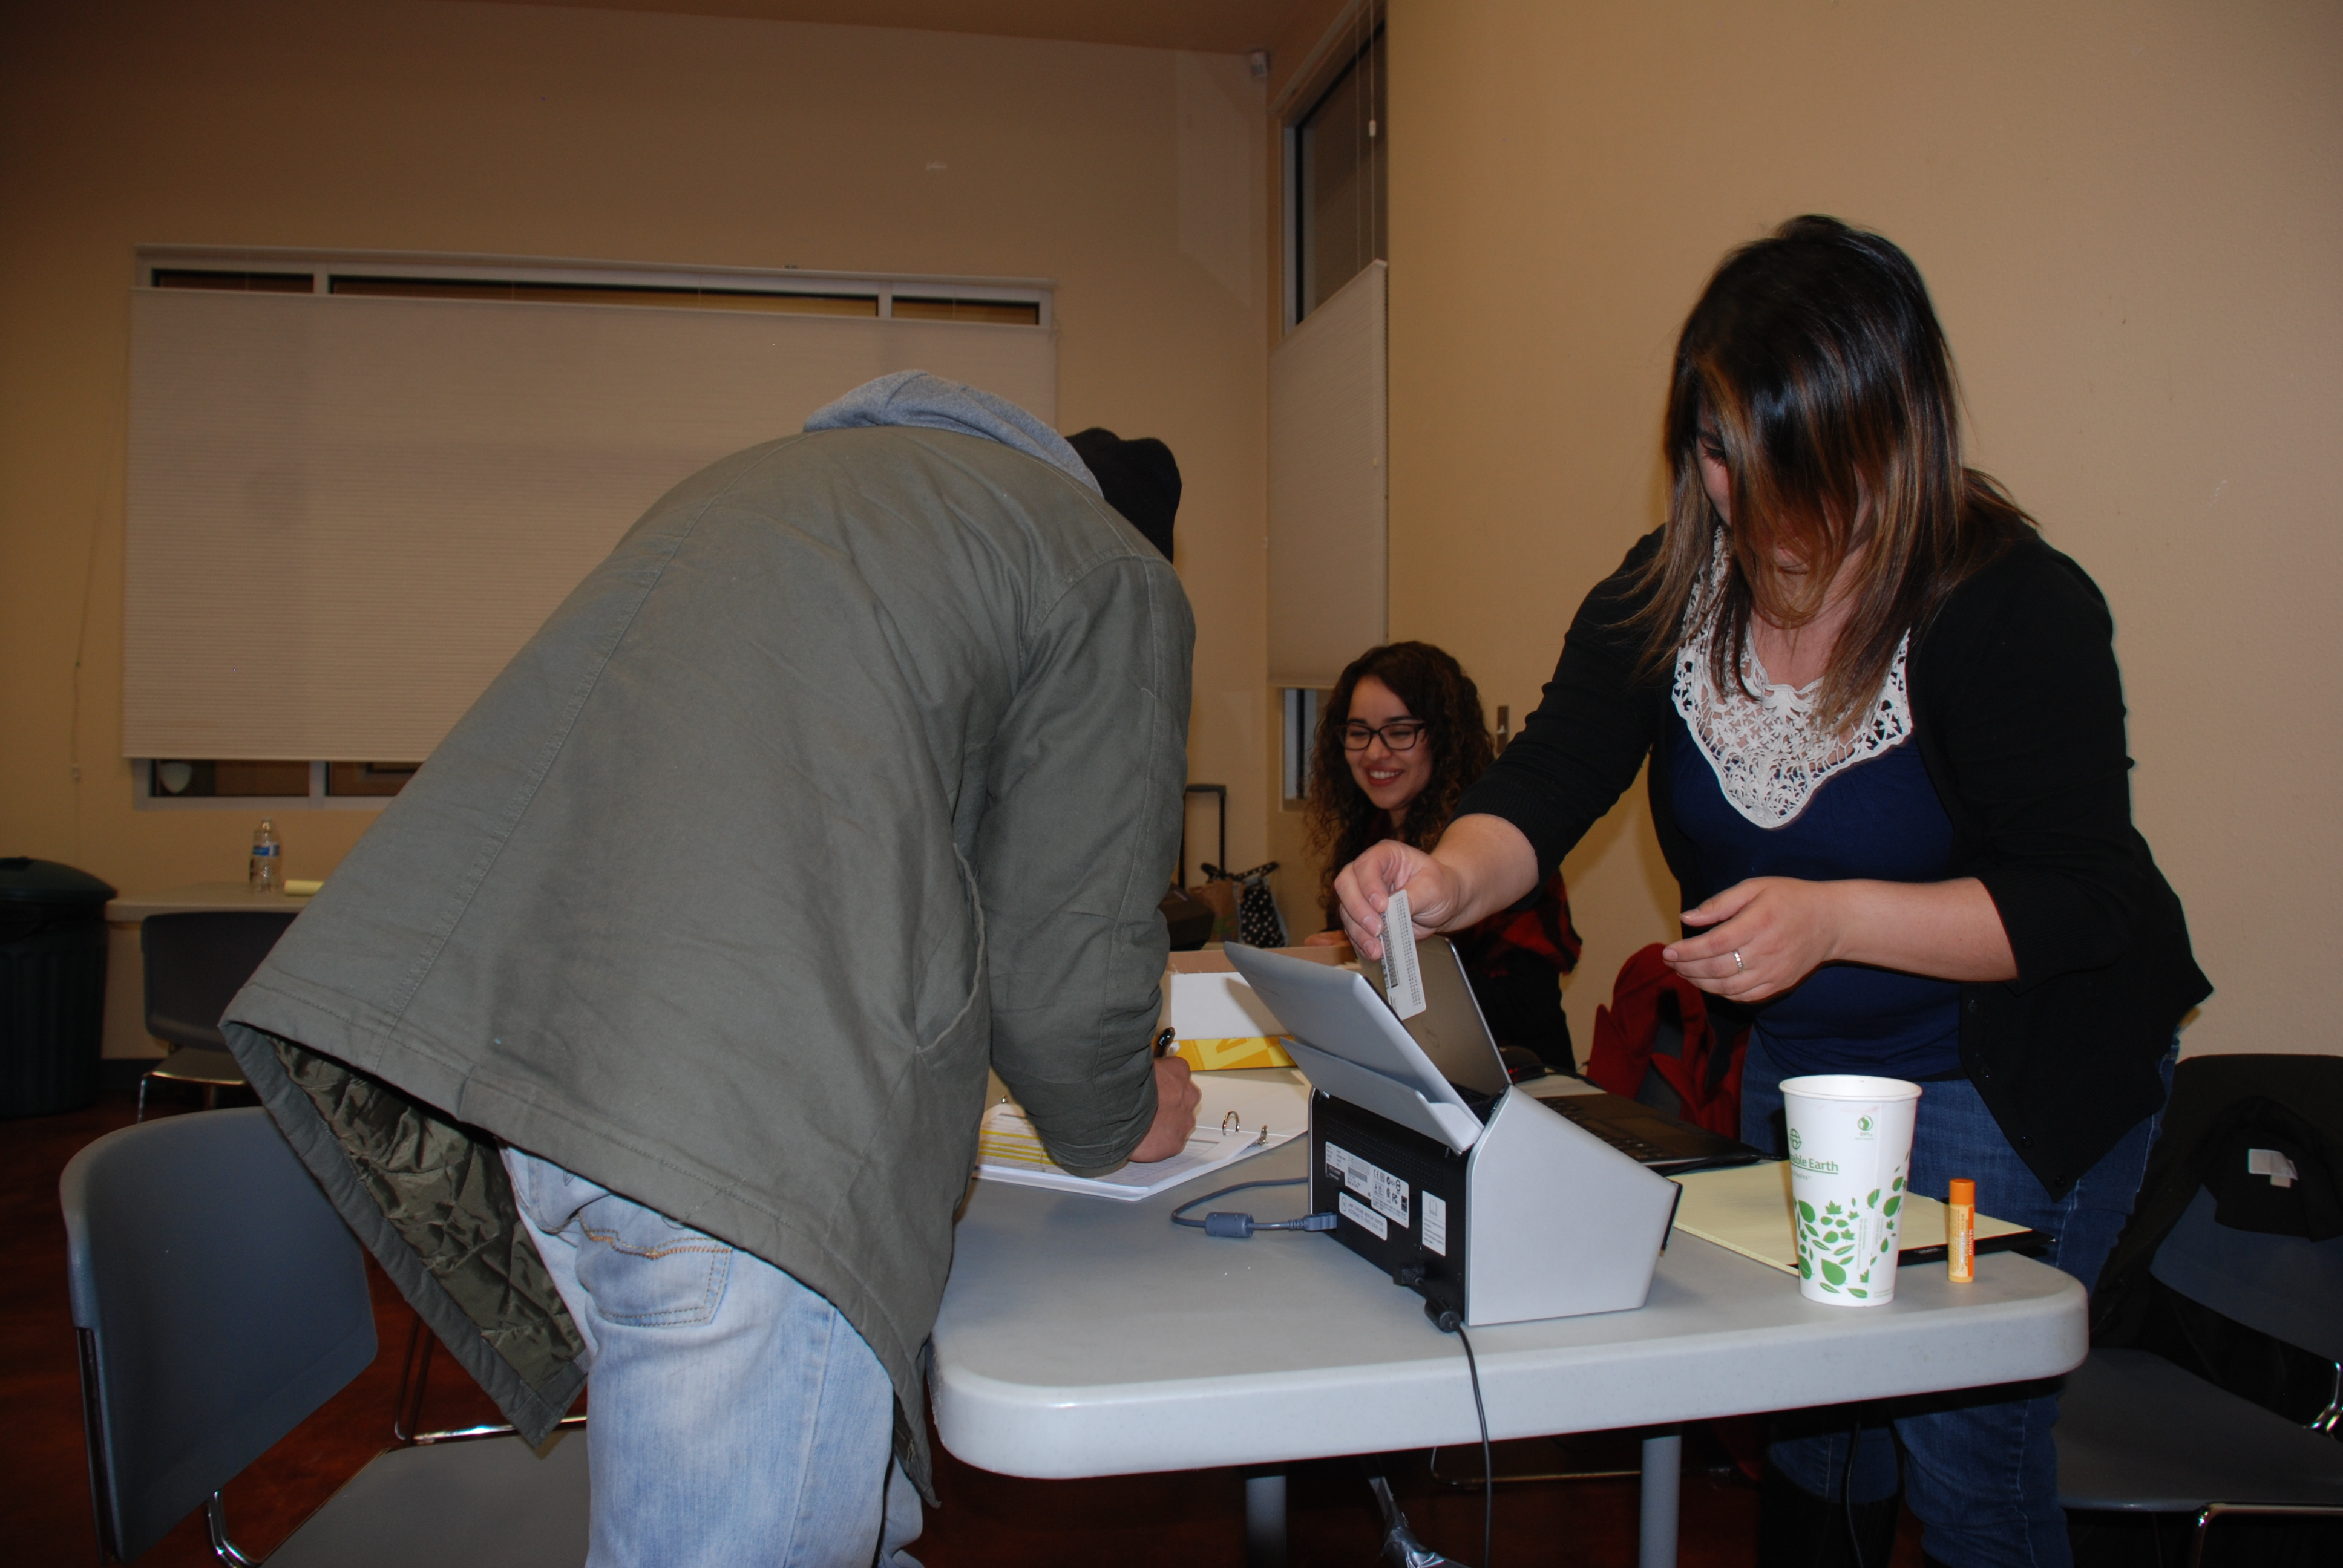 Legal Assistants, Cheli Bueno and Elvia Bueno, helping distribute settlement checks.